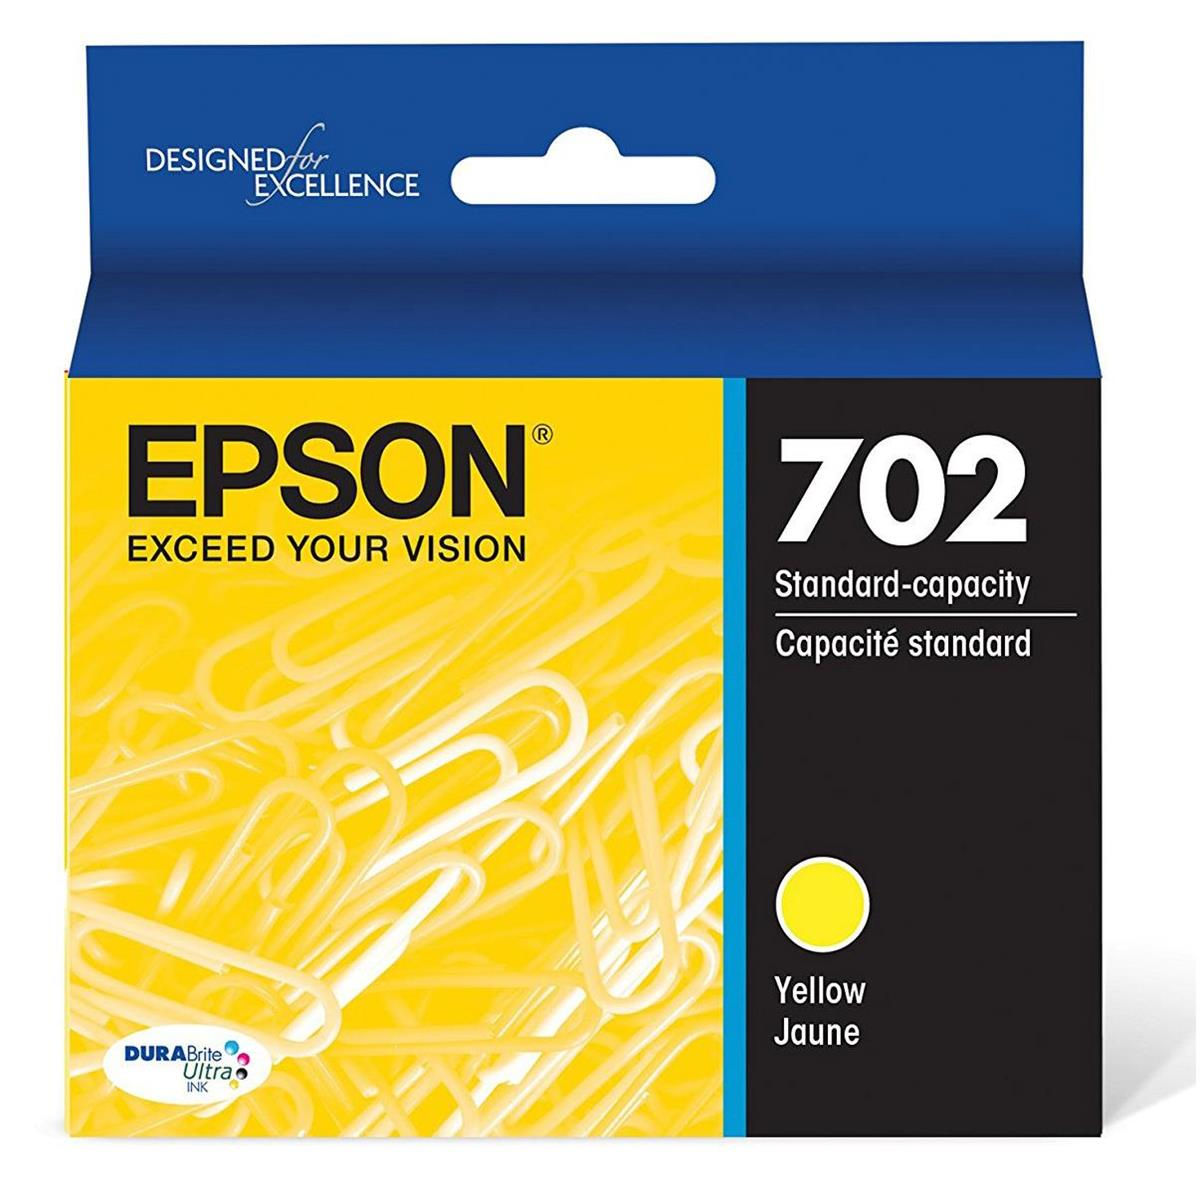 Epson T702420 Yellow Ink Cartridge